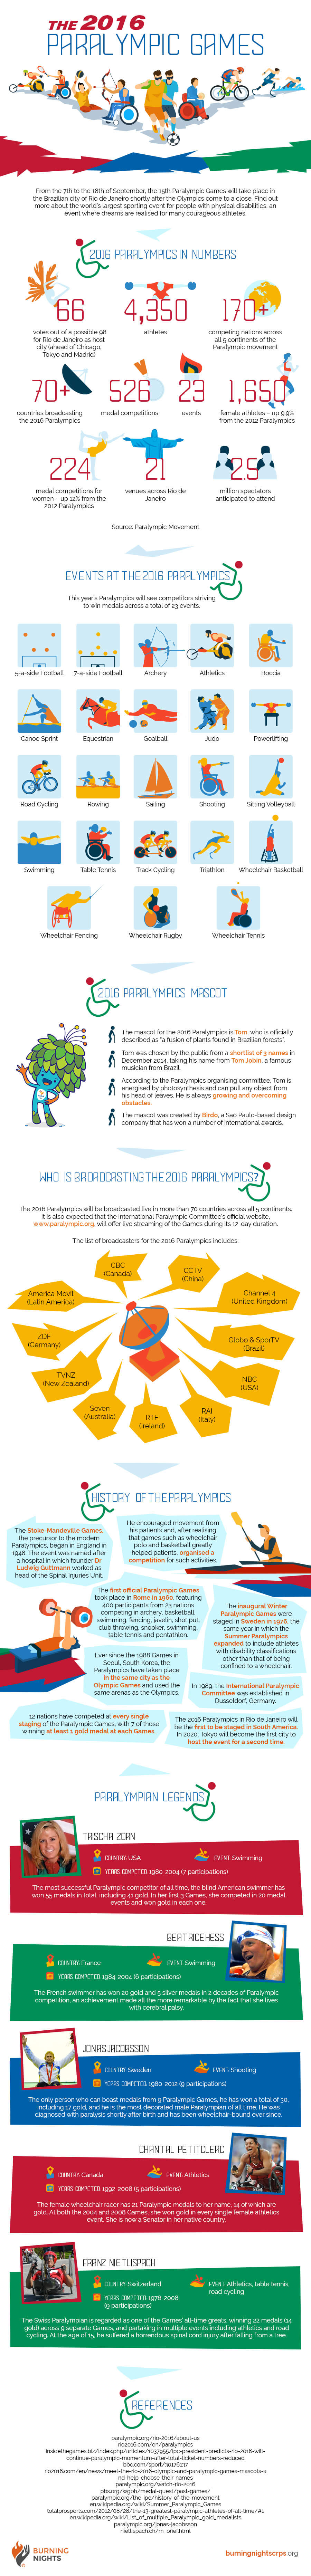 The 2016 Paralympic Games